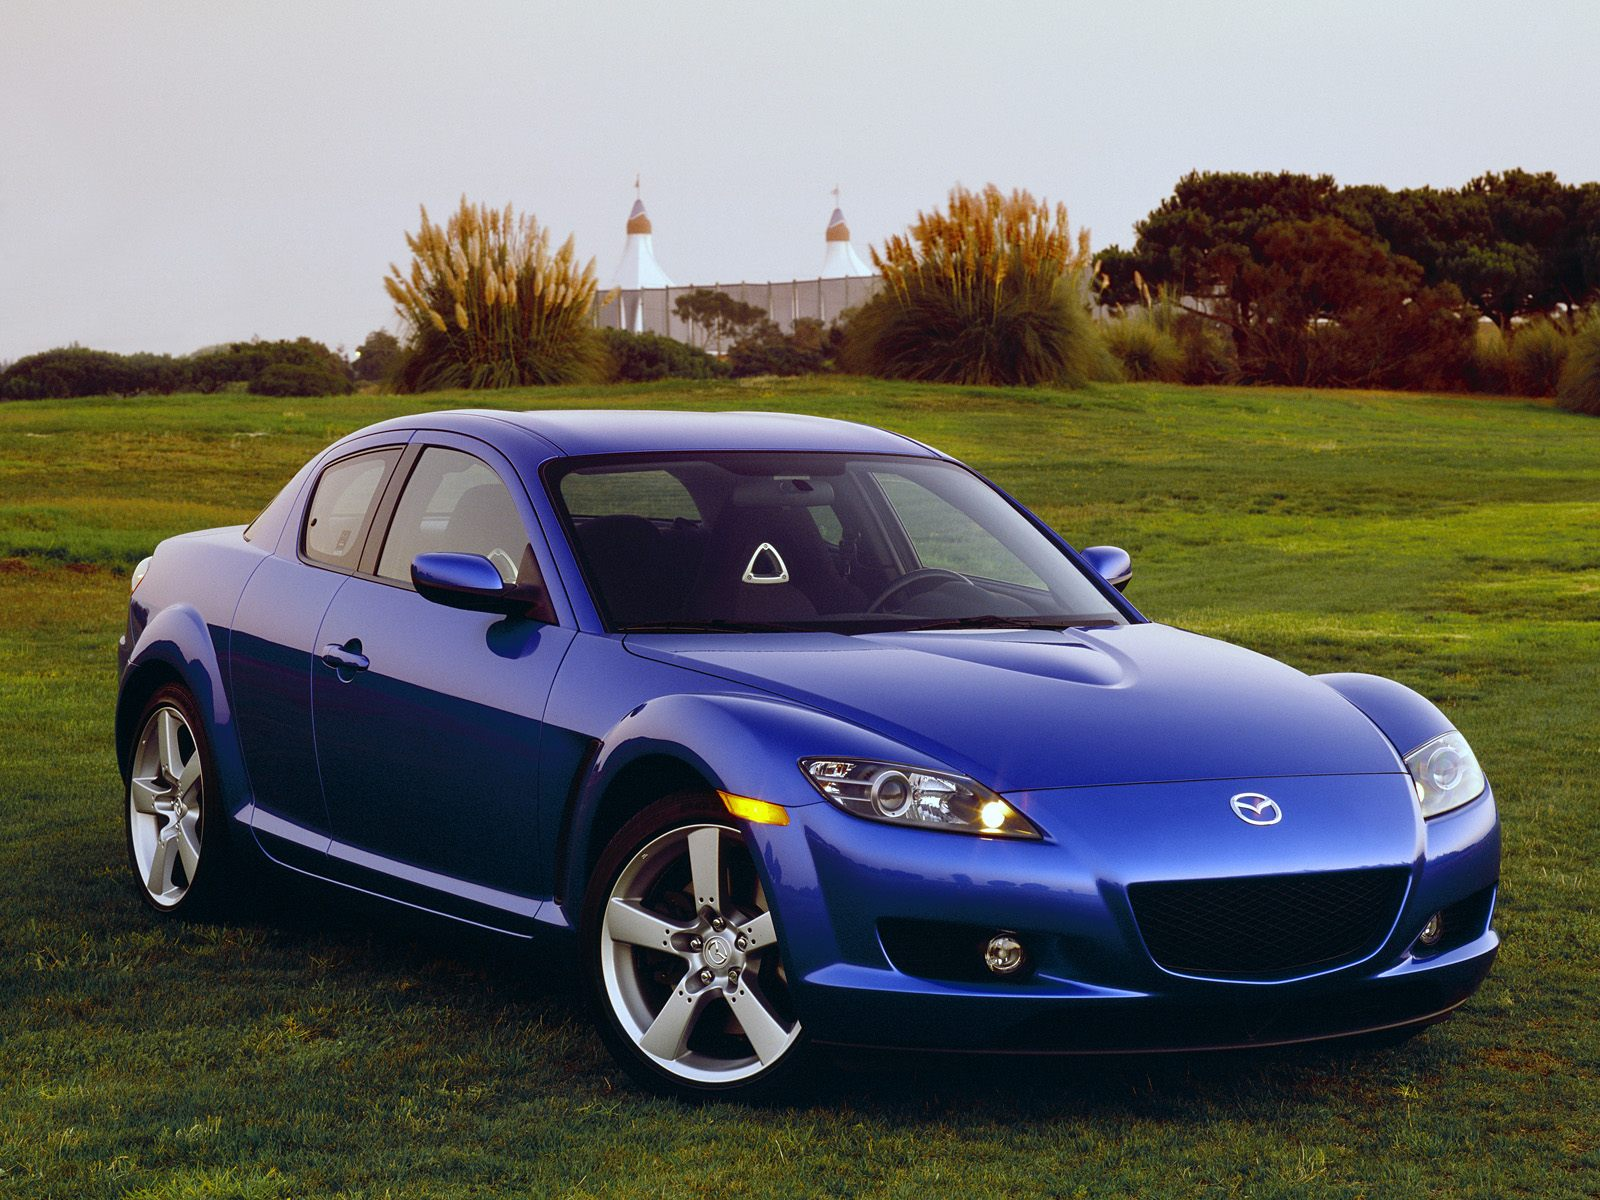 mazda rx8 wallpaper wallpapersafari. Black Bedroom Furniture Sets. Home Design Ideas